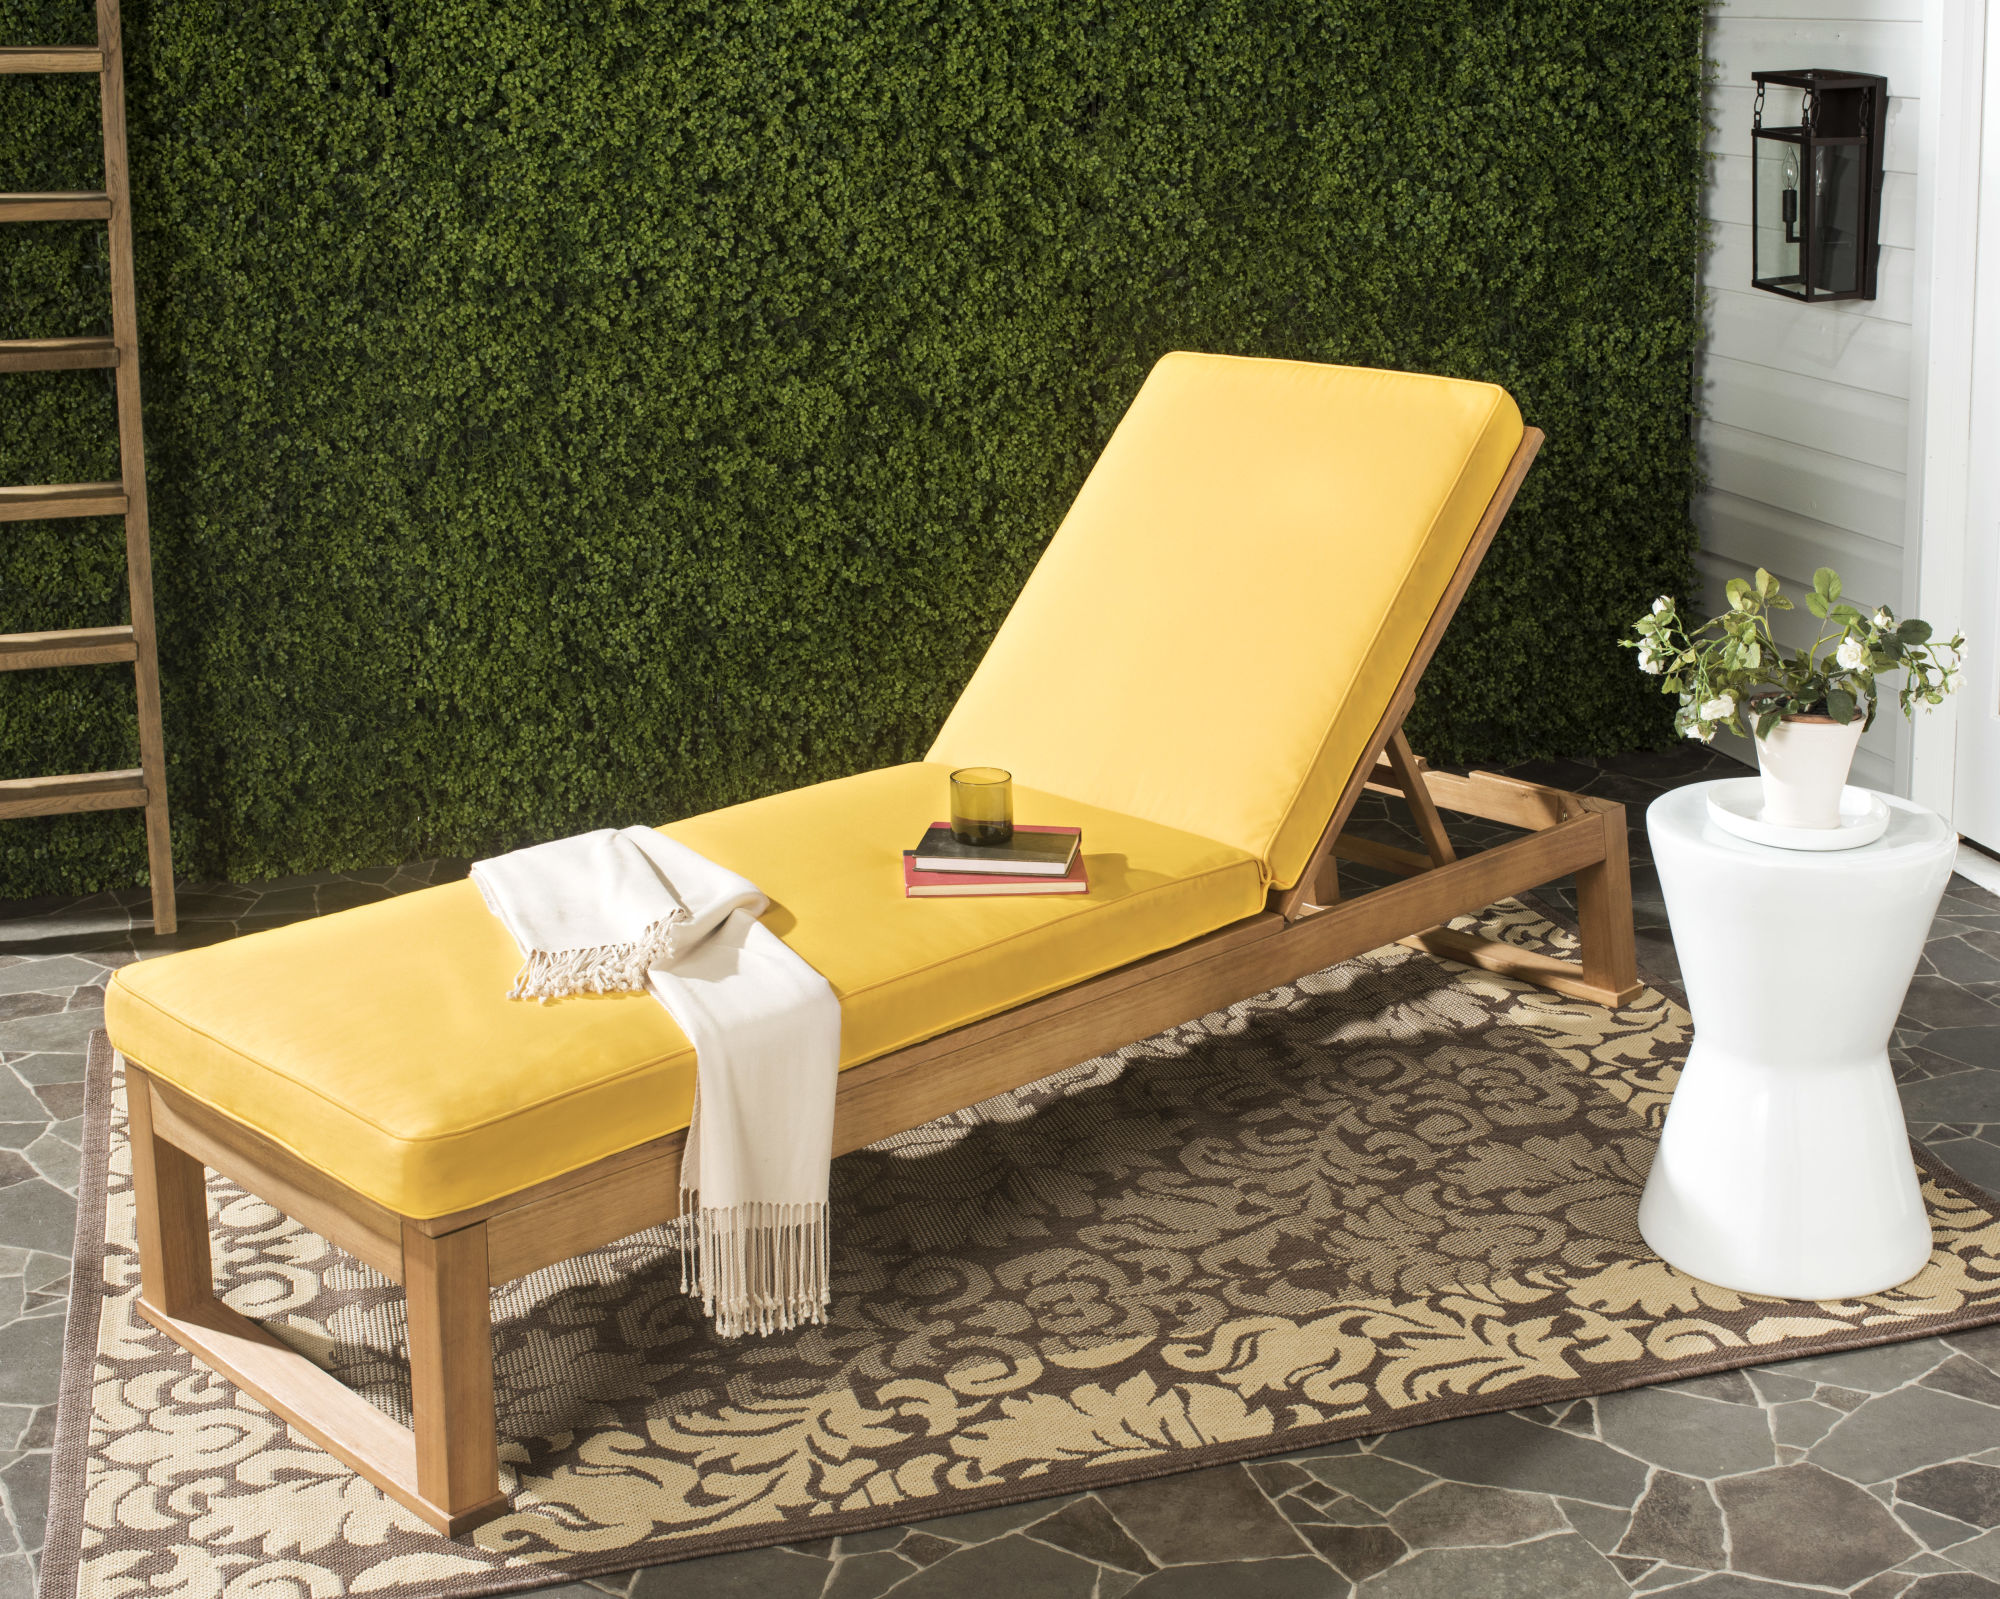 Solano Sunlounger on Safavieh Outdoor Living Solano Sunlounger id=31078